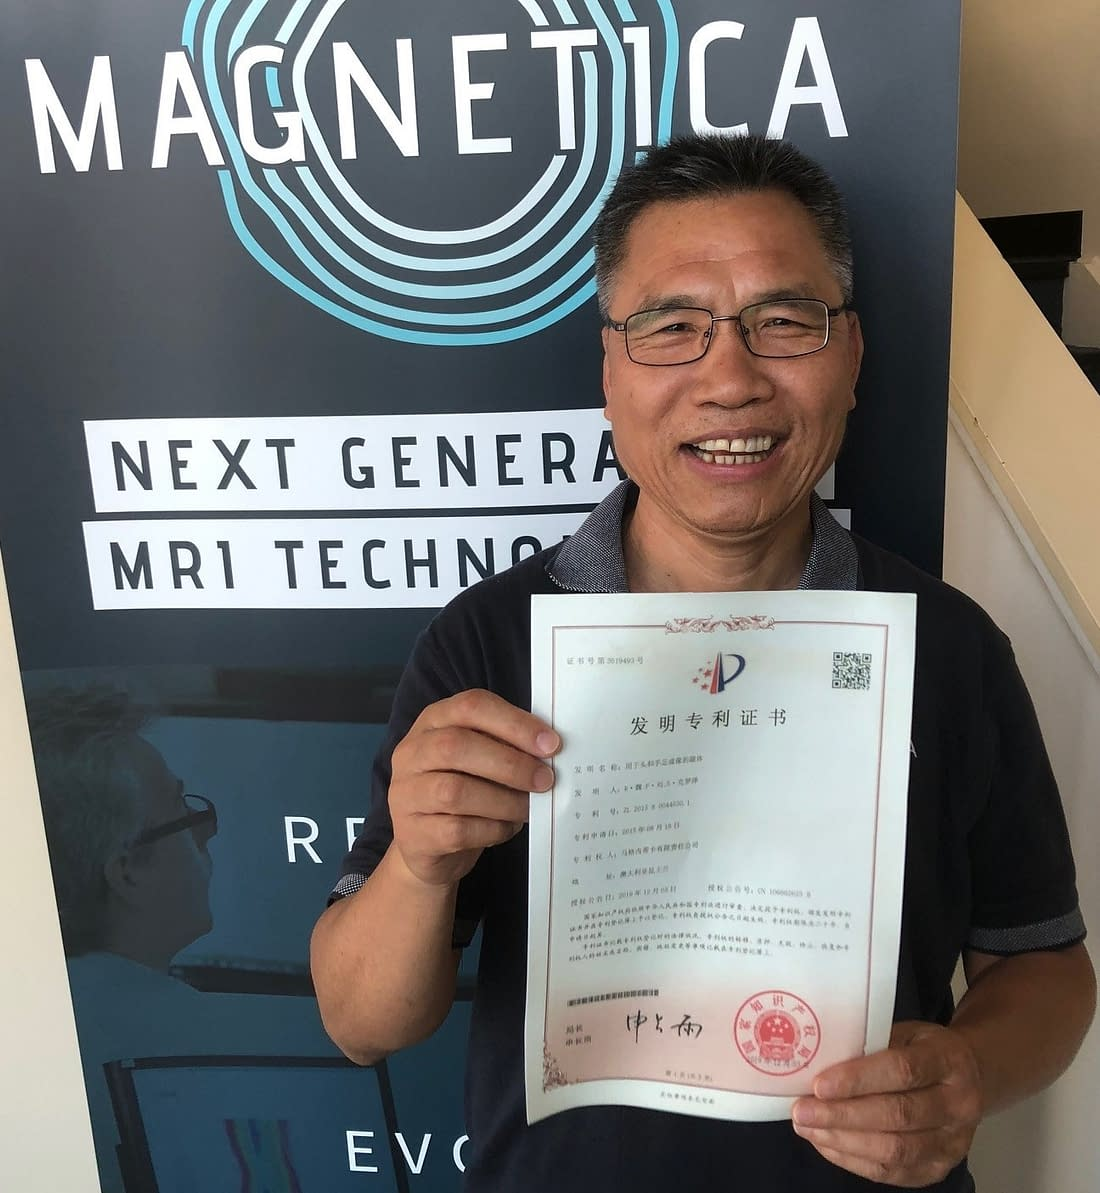 """Dr Riyu Wei, one of the inventors, holding the Chinese Certificate for Magnetica's """"Magnet for Head and Extremity Imaging"""" patent - granted in China and Japan."""